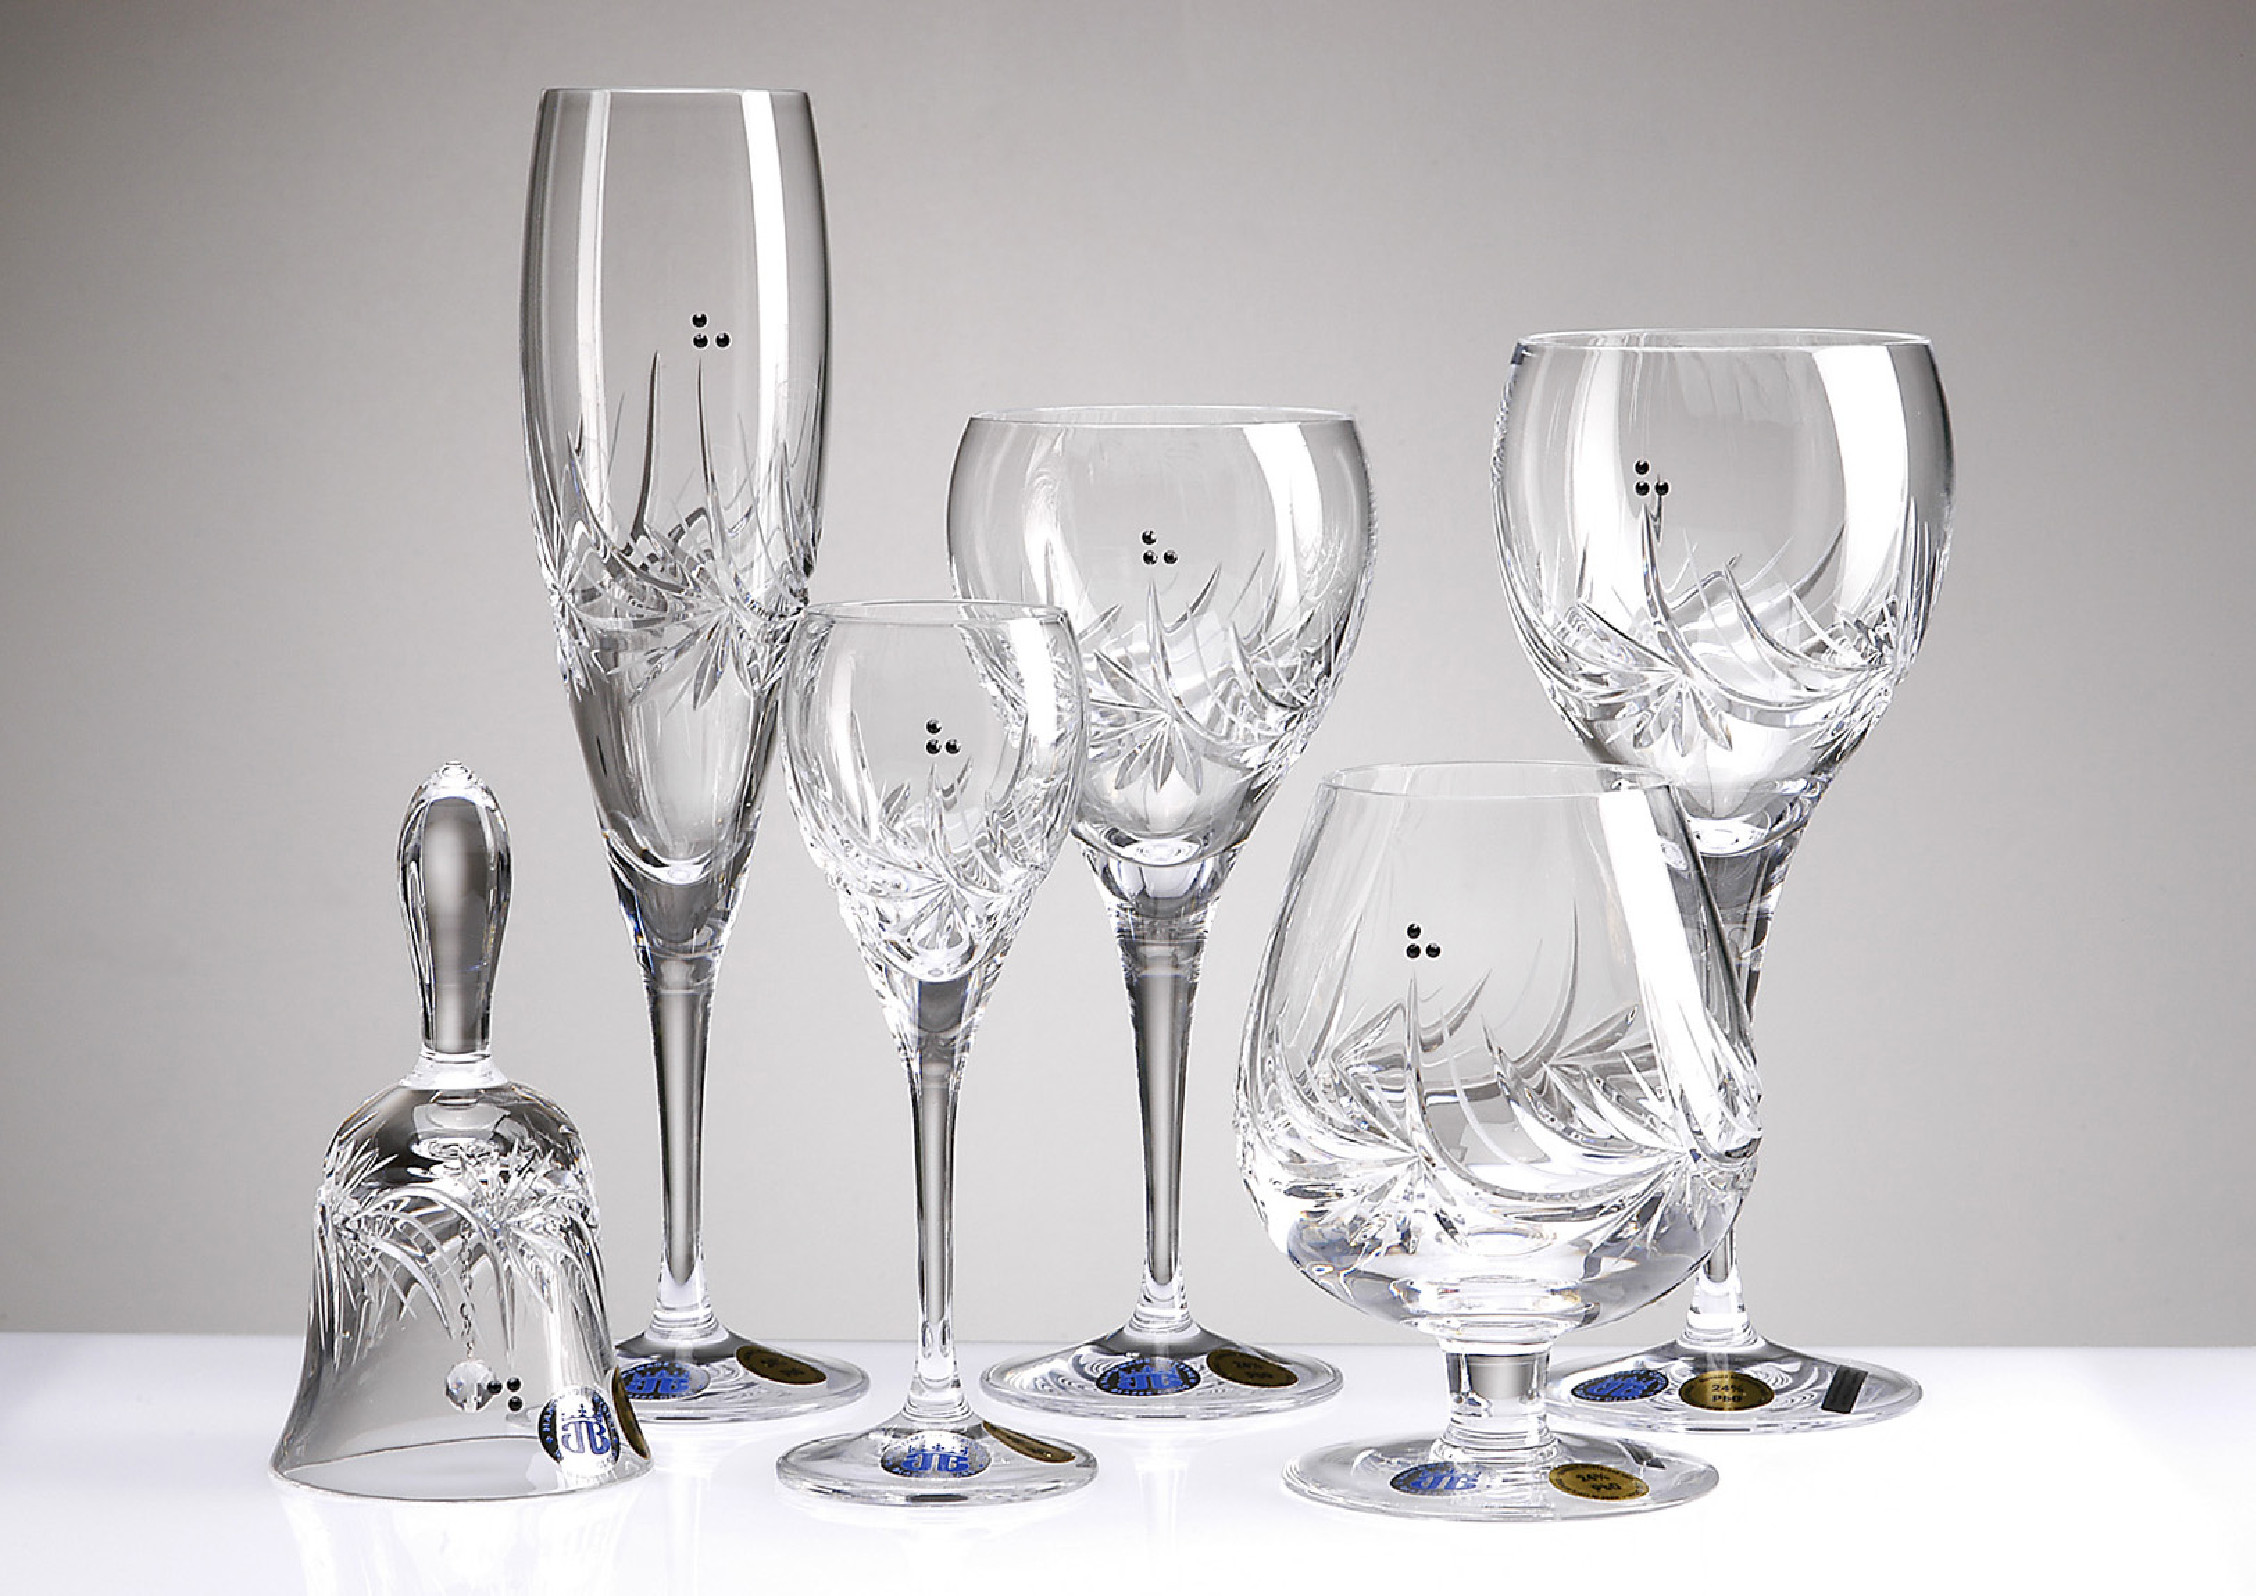 Fl te cristal 3 points for Disposition des verres sur la table